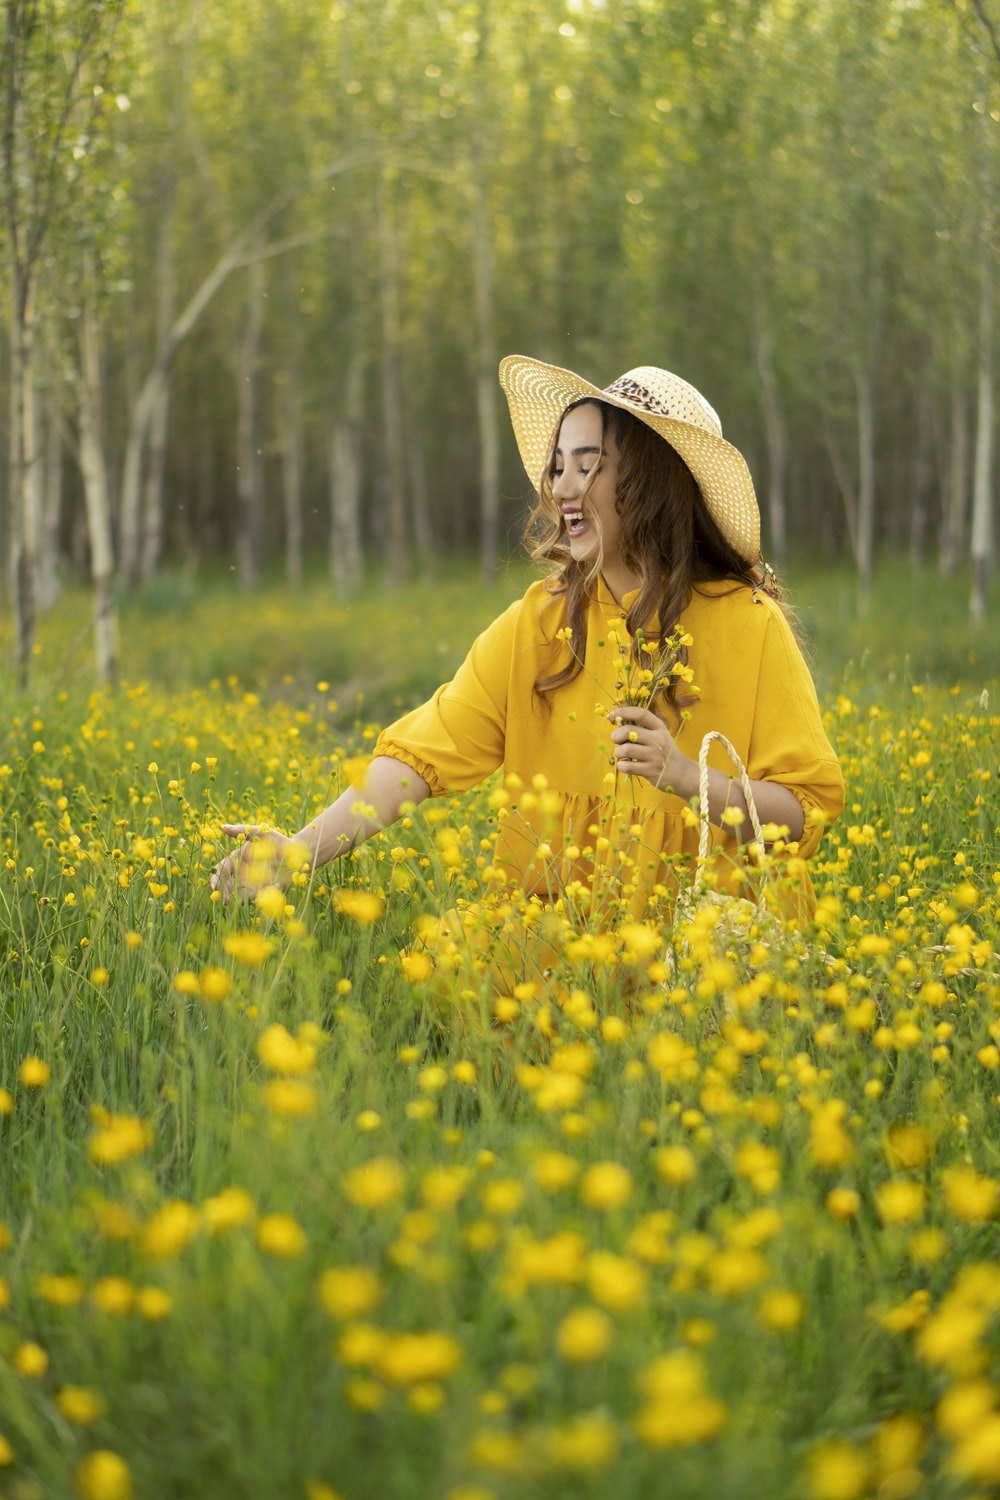 girl in yellow long sleeved shirt and brown cowboy hat standing on yellow flower field during